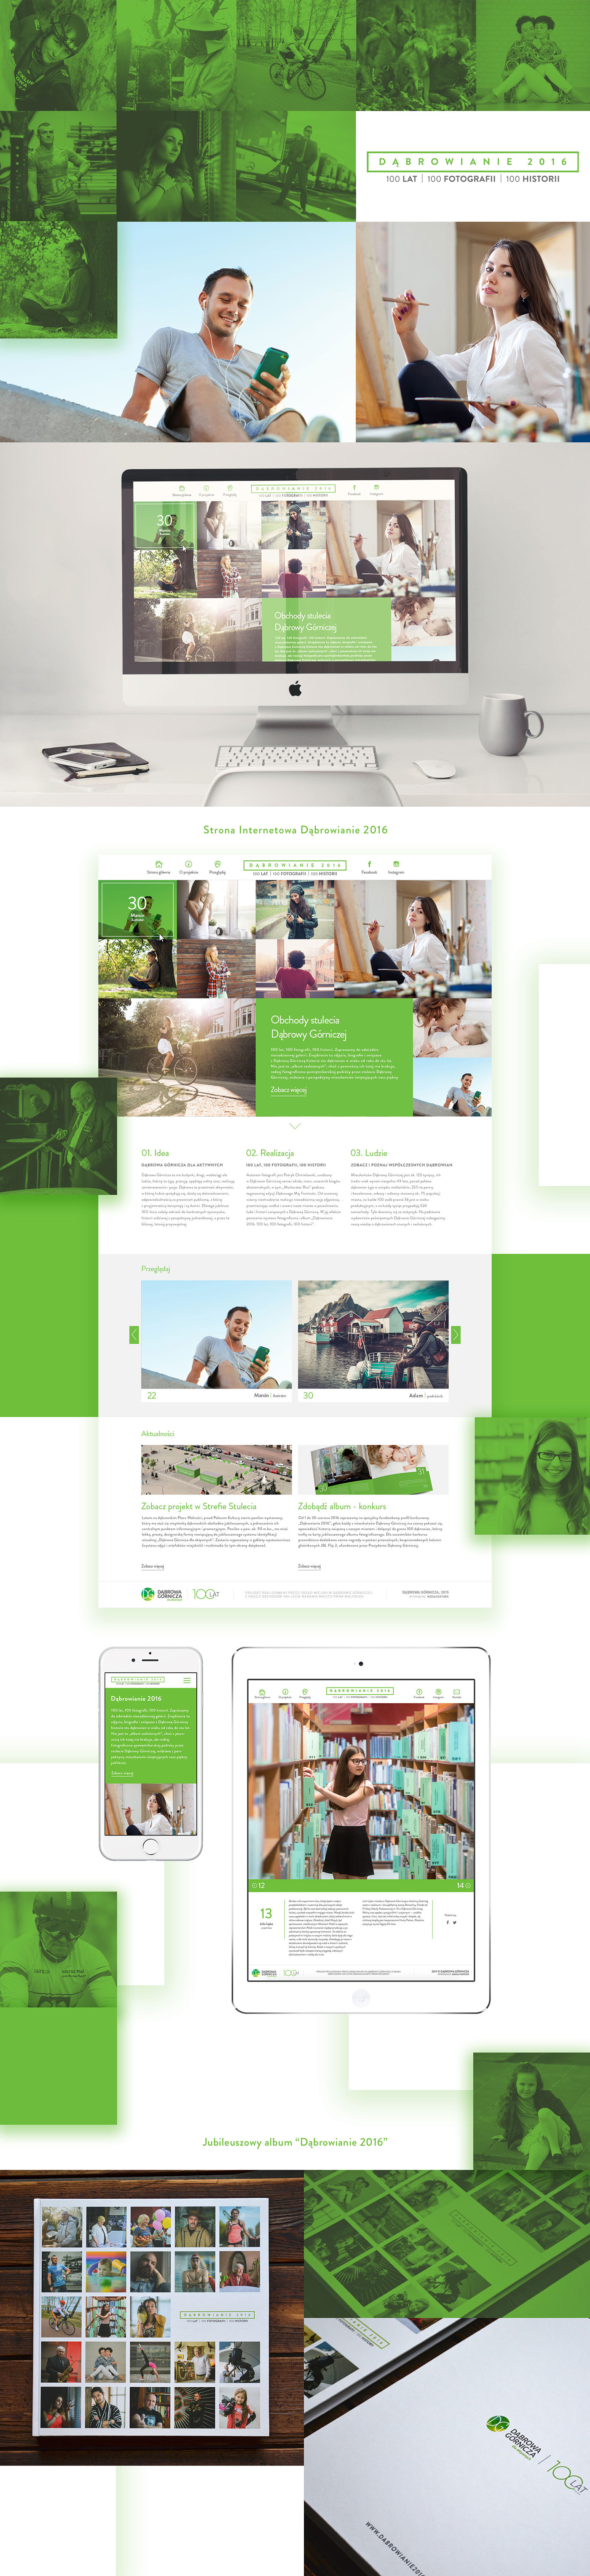 green logo people city Web Design  360 campaign identity brand Photography  editorial